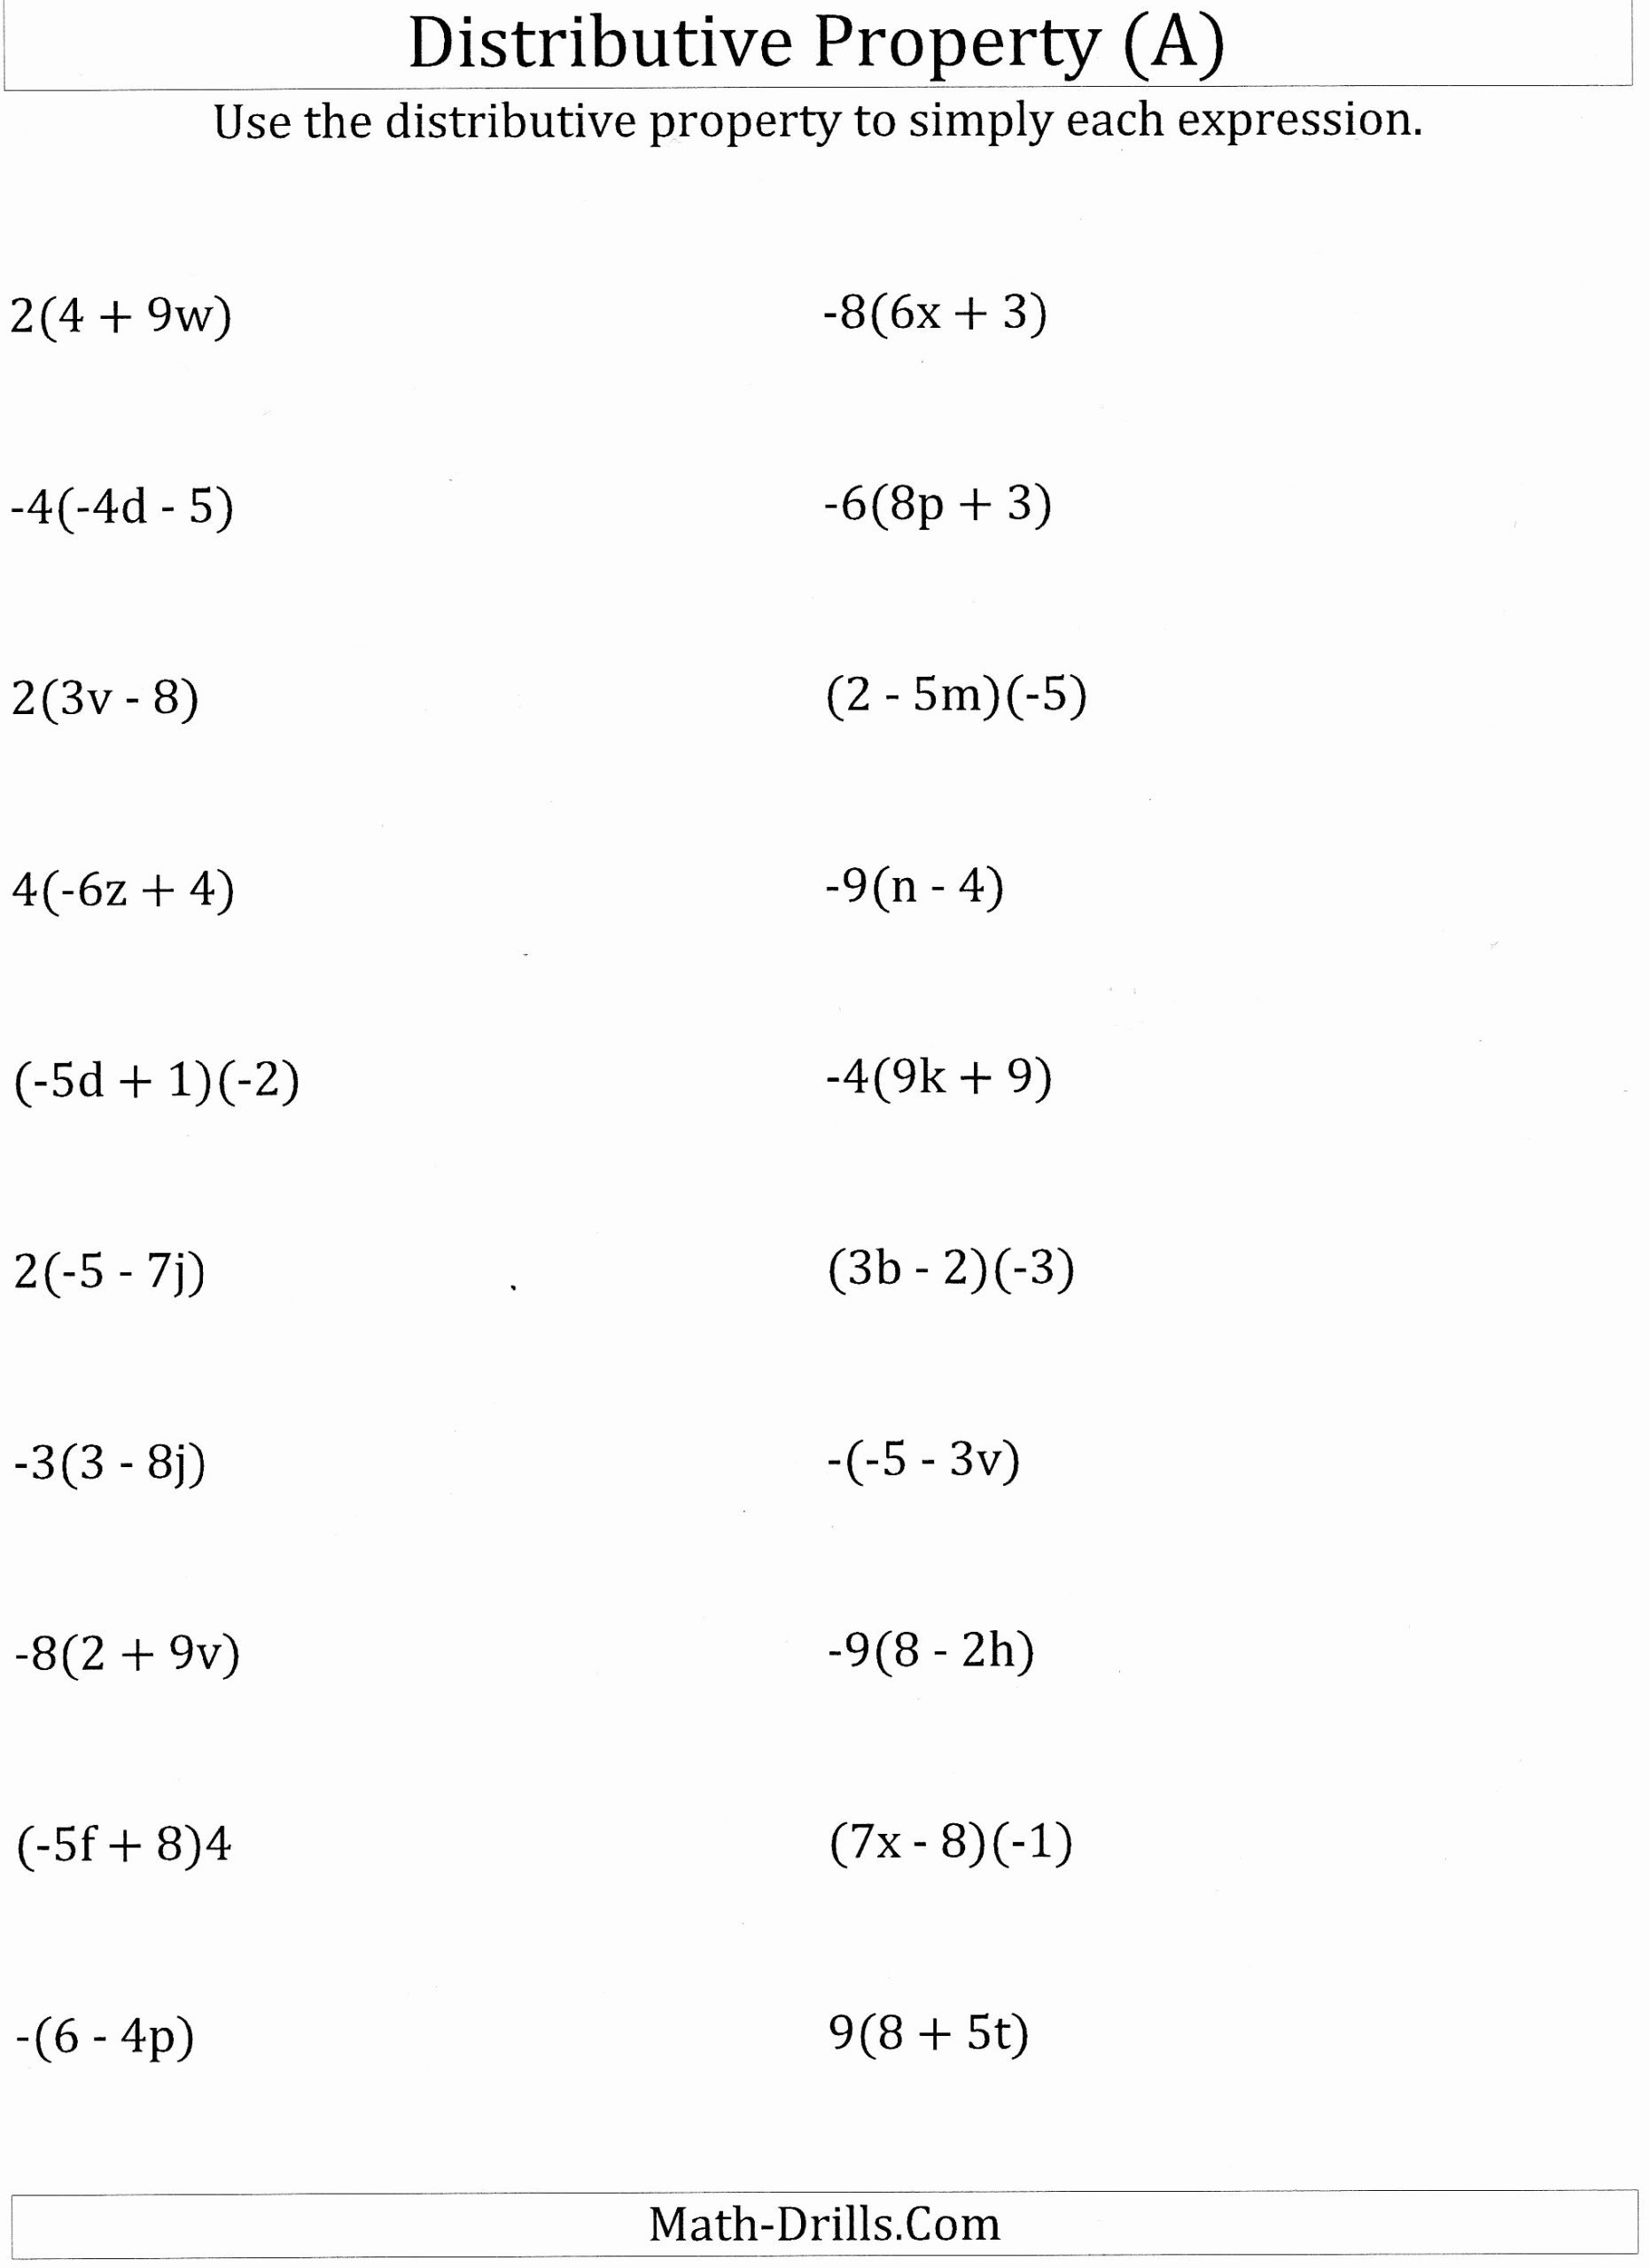 Distributive Property 6th Grade Worksheet Ideas Worksheet Math Worksheets Distributive Property